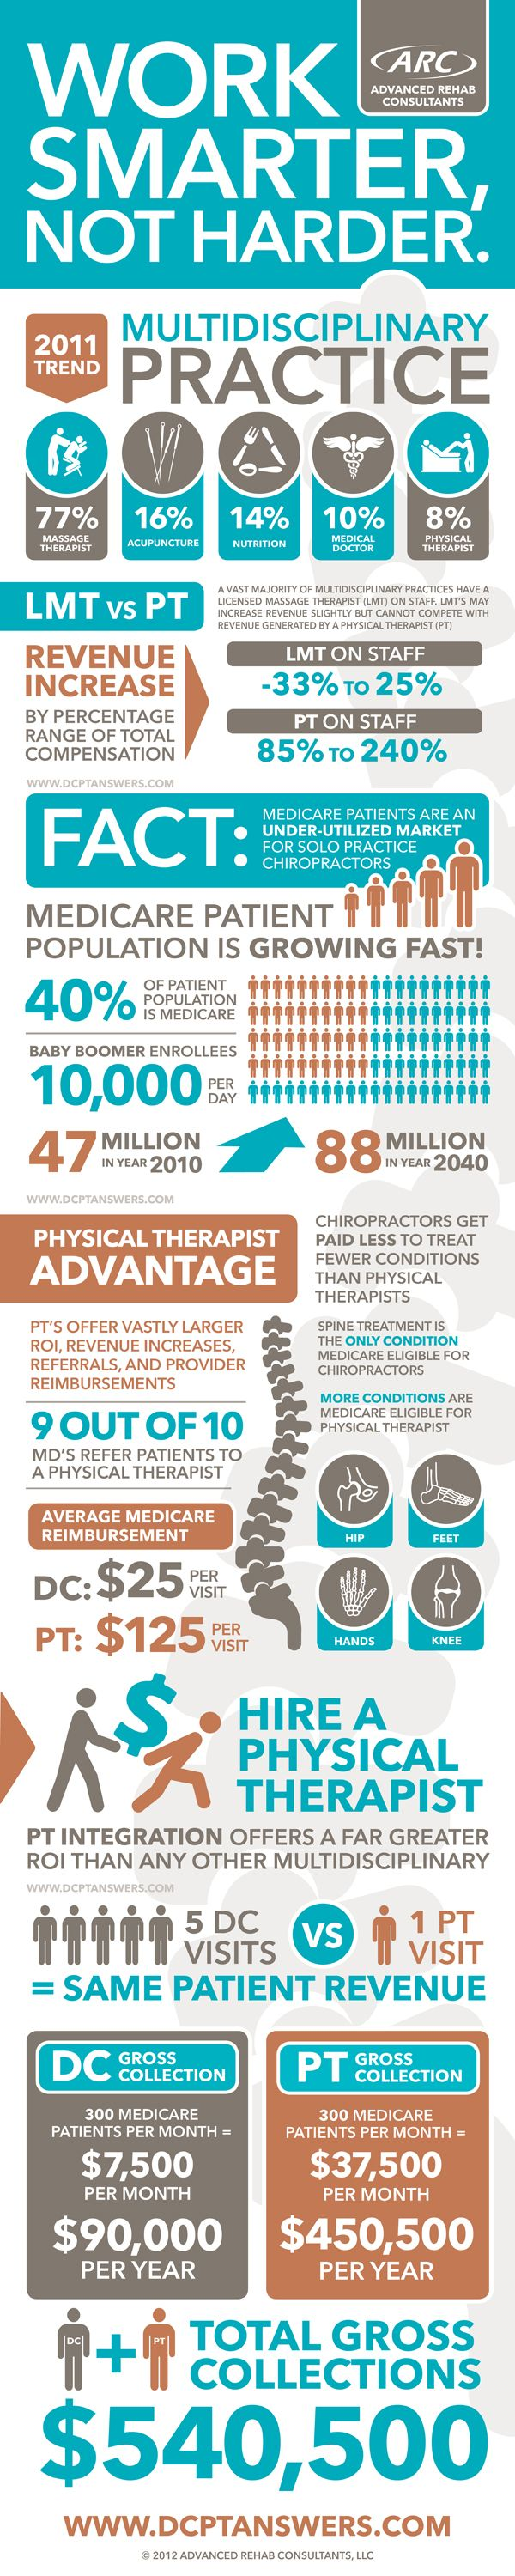 Jobs for impact physical therapy - List Of 33 Catchy Physical Therapy Ad Slogans